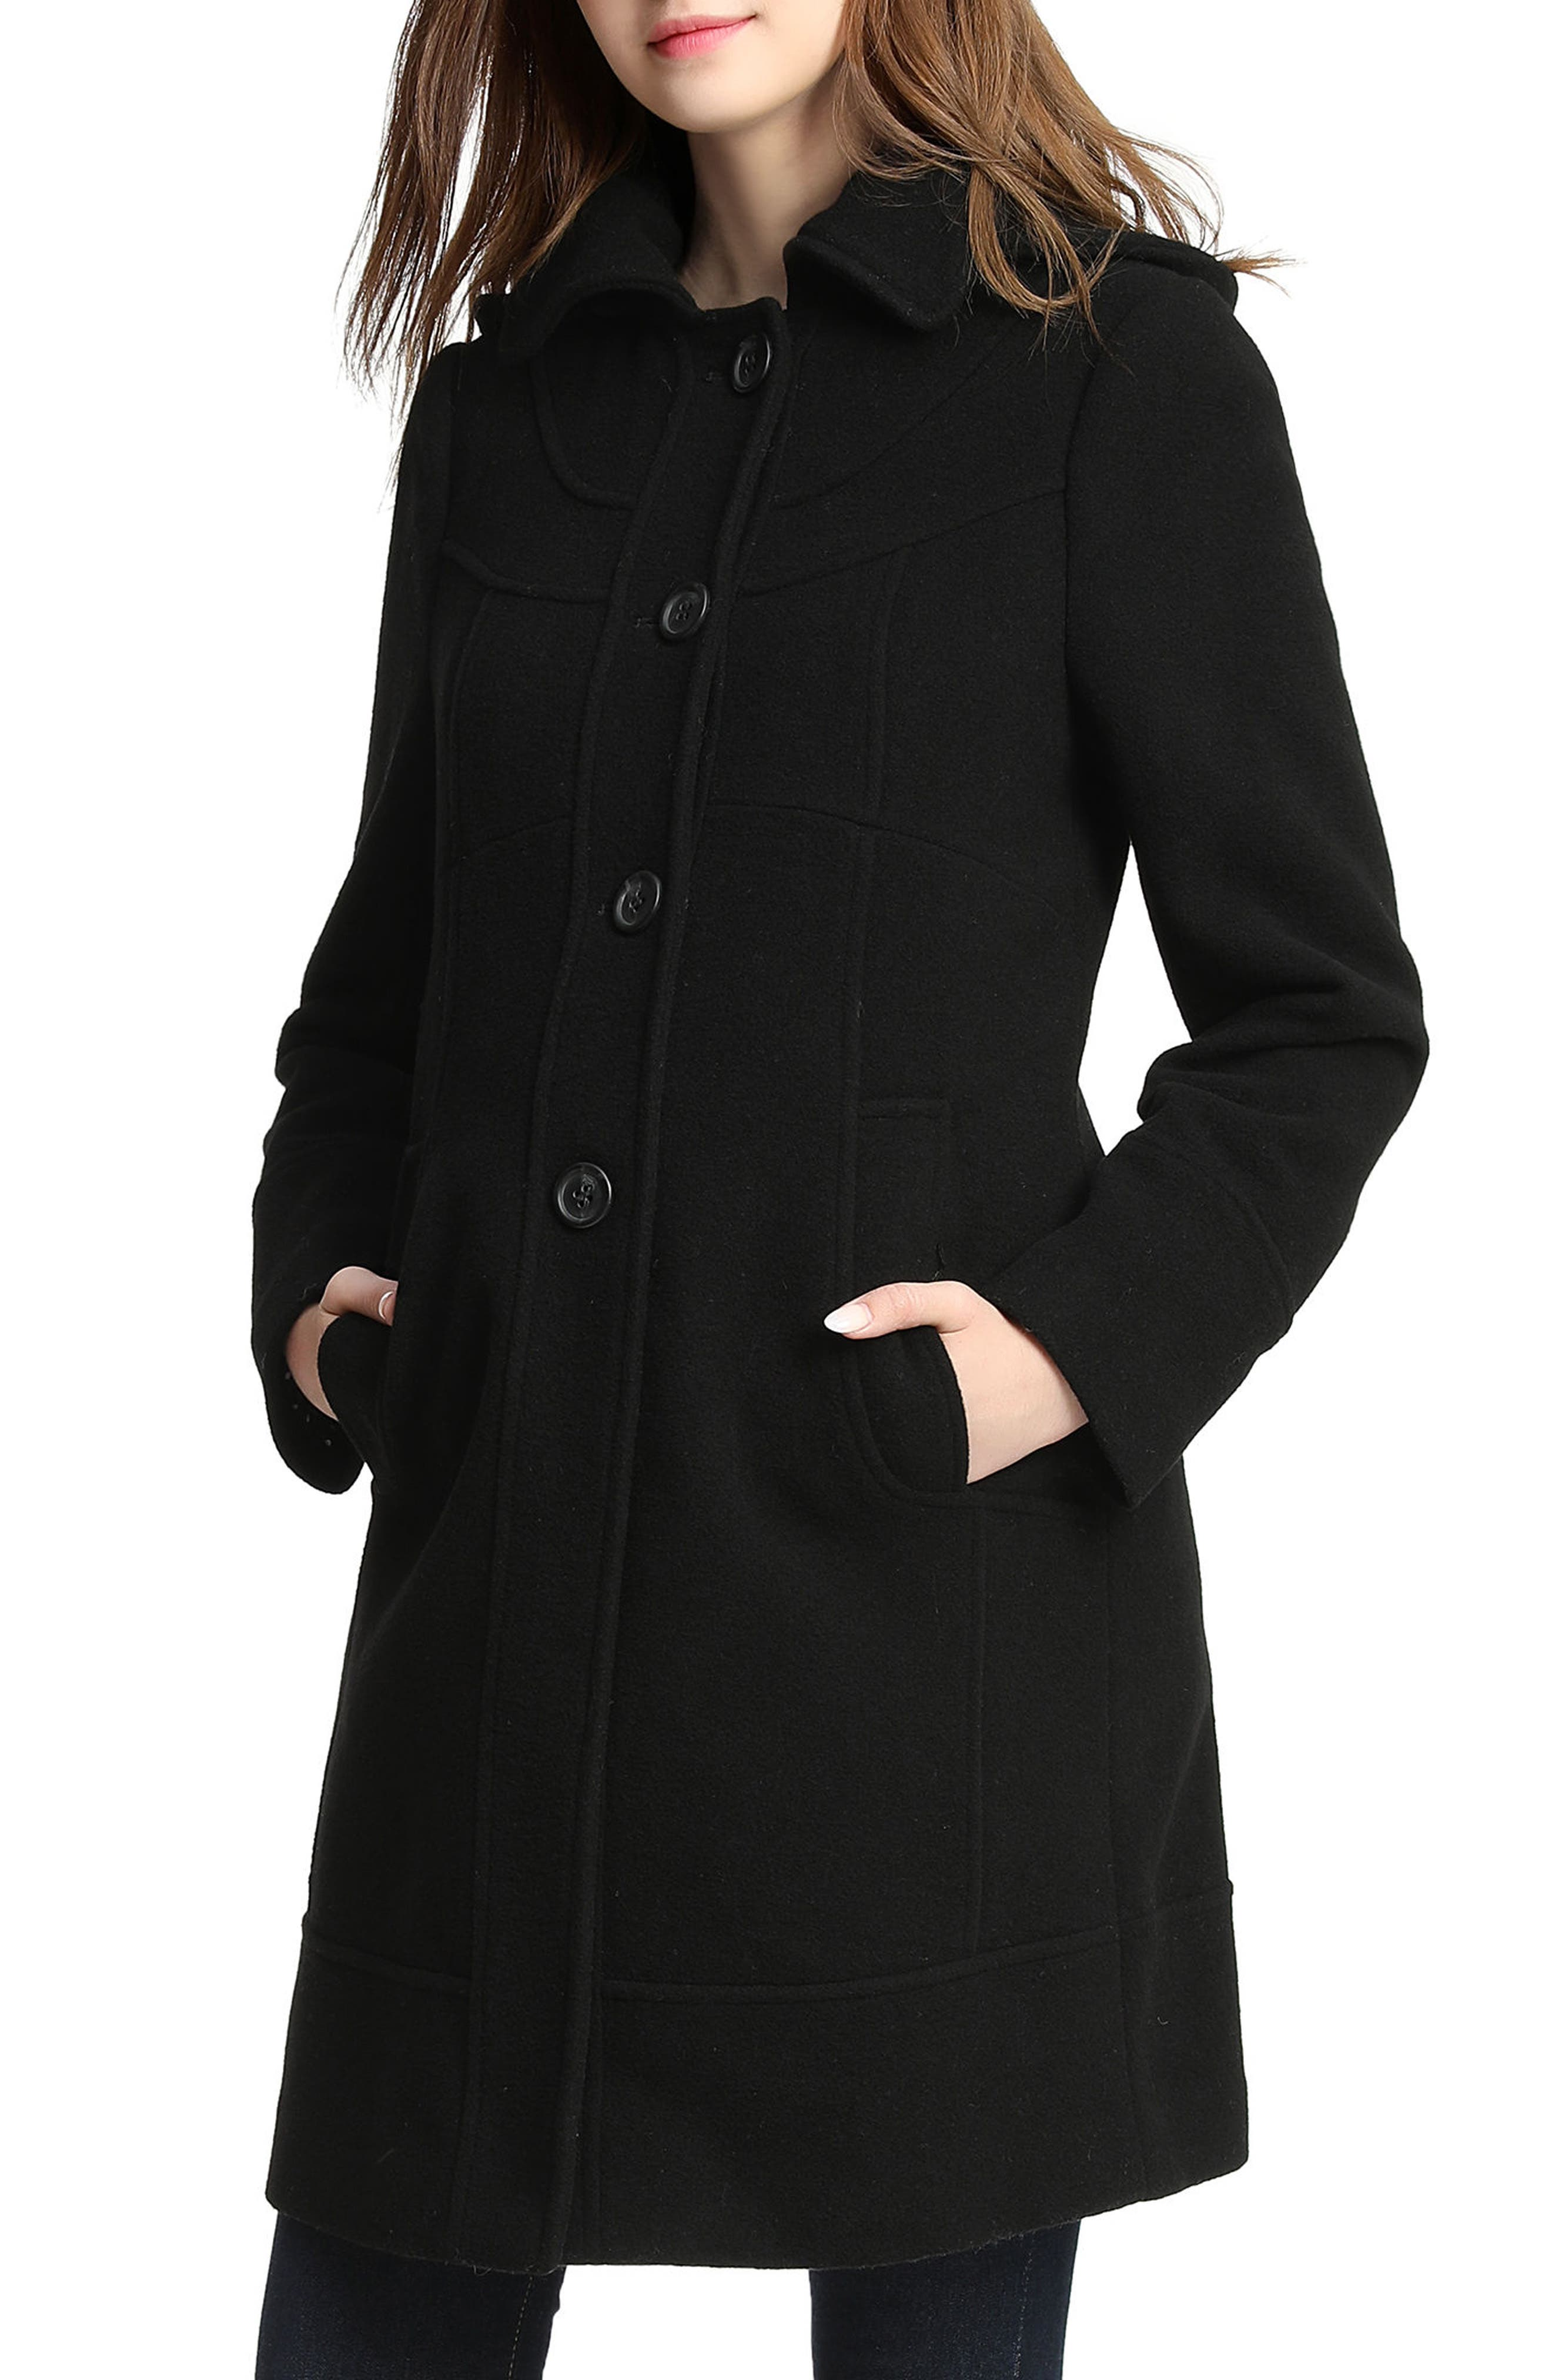 Main Image - Kimi and Kai Wool Blend Maternity Coat